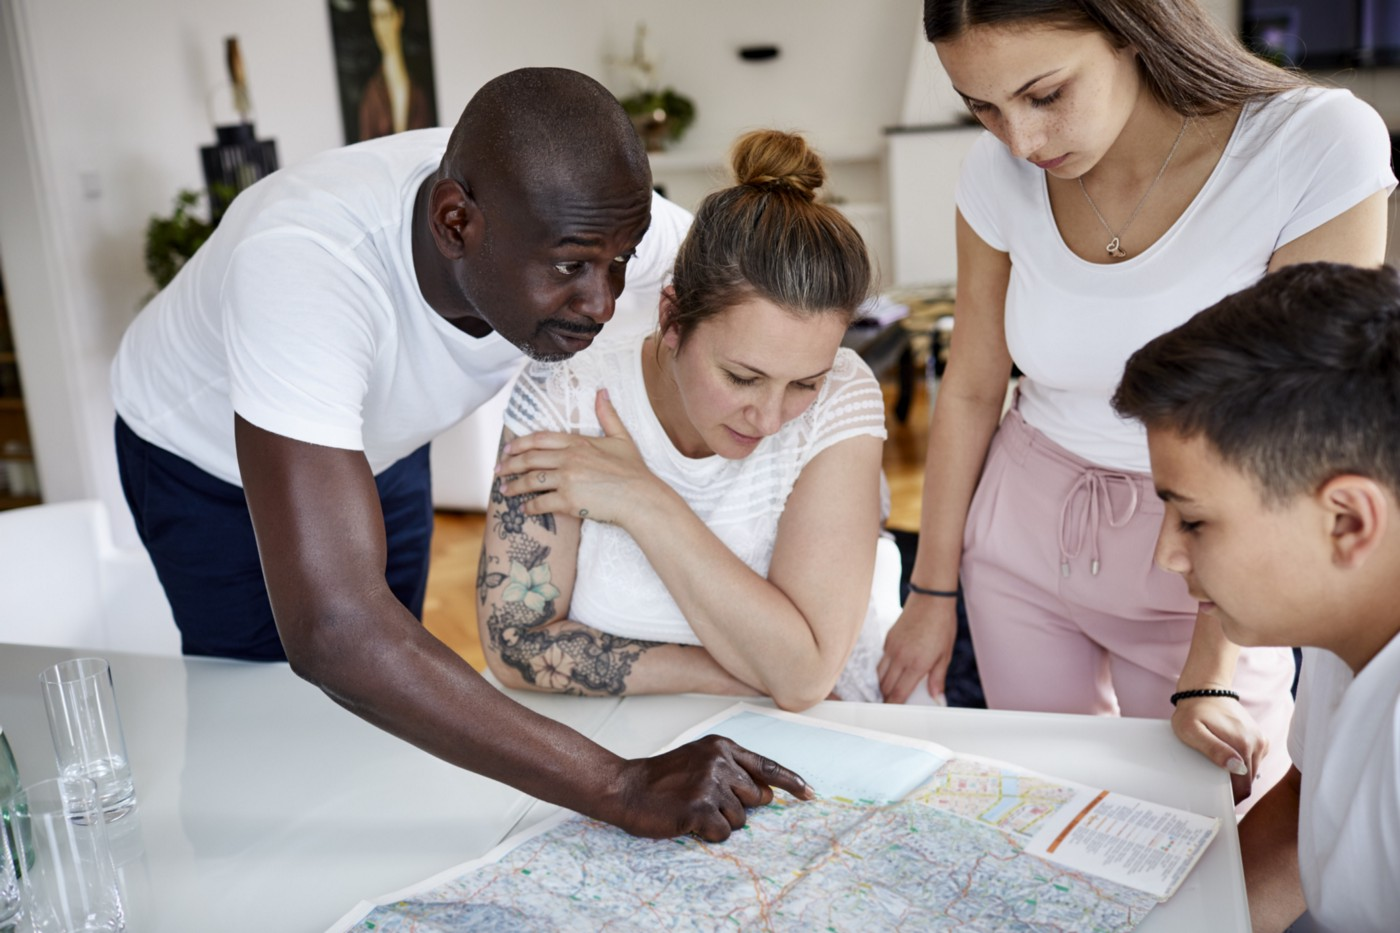 A family looks at a map at home.